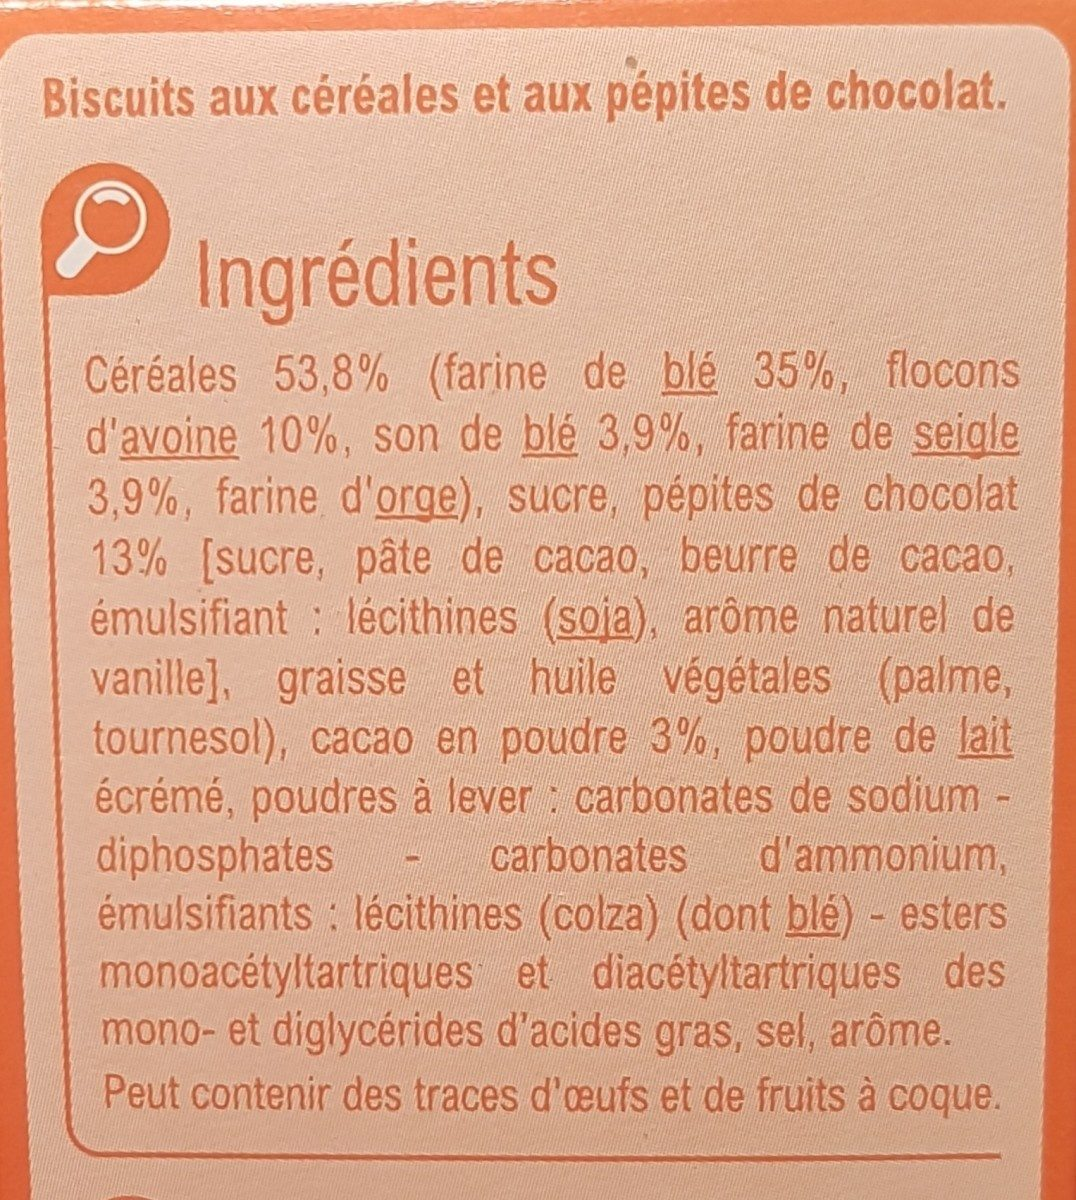 P'tit dej pepite de chocolat - Ingredients